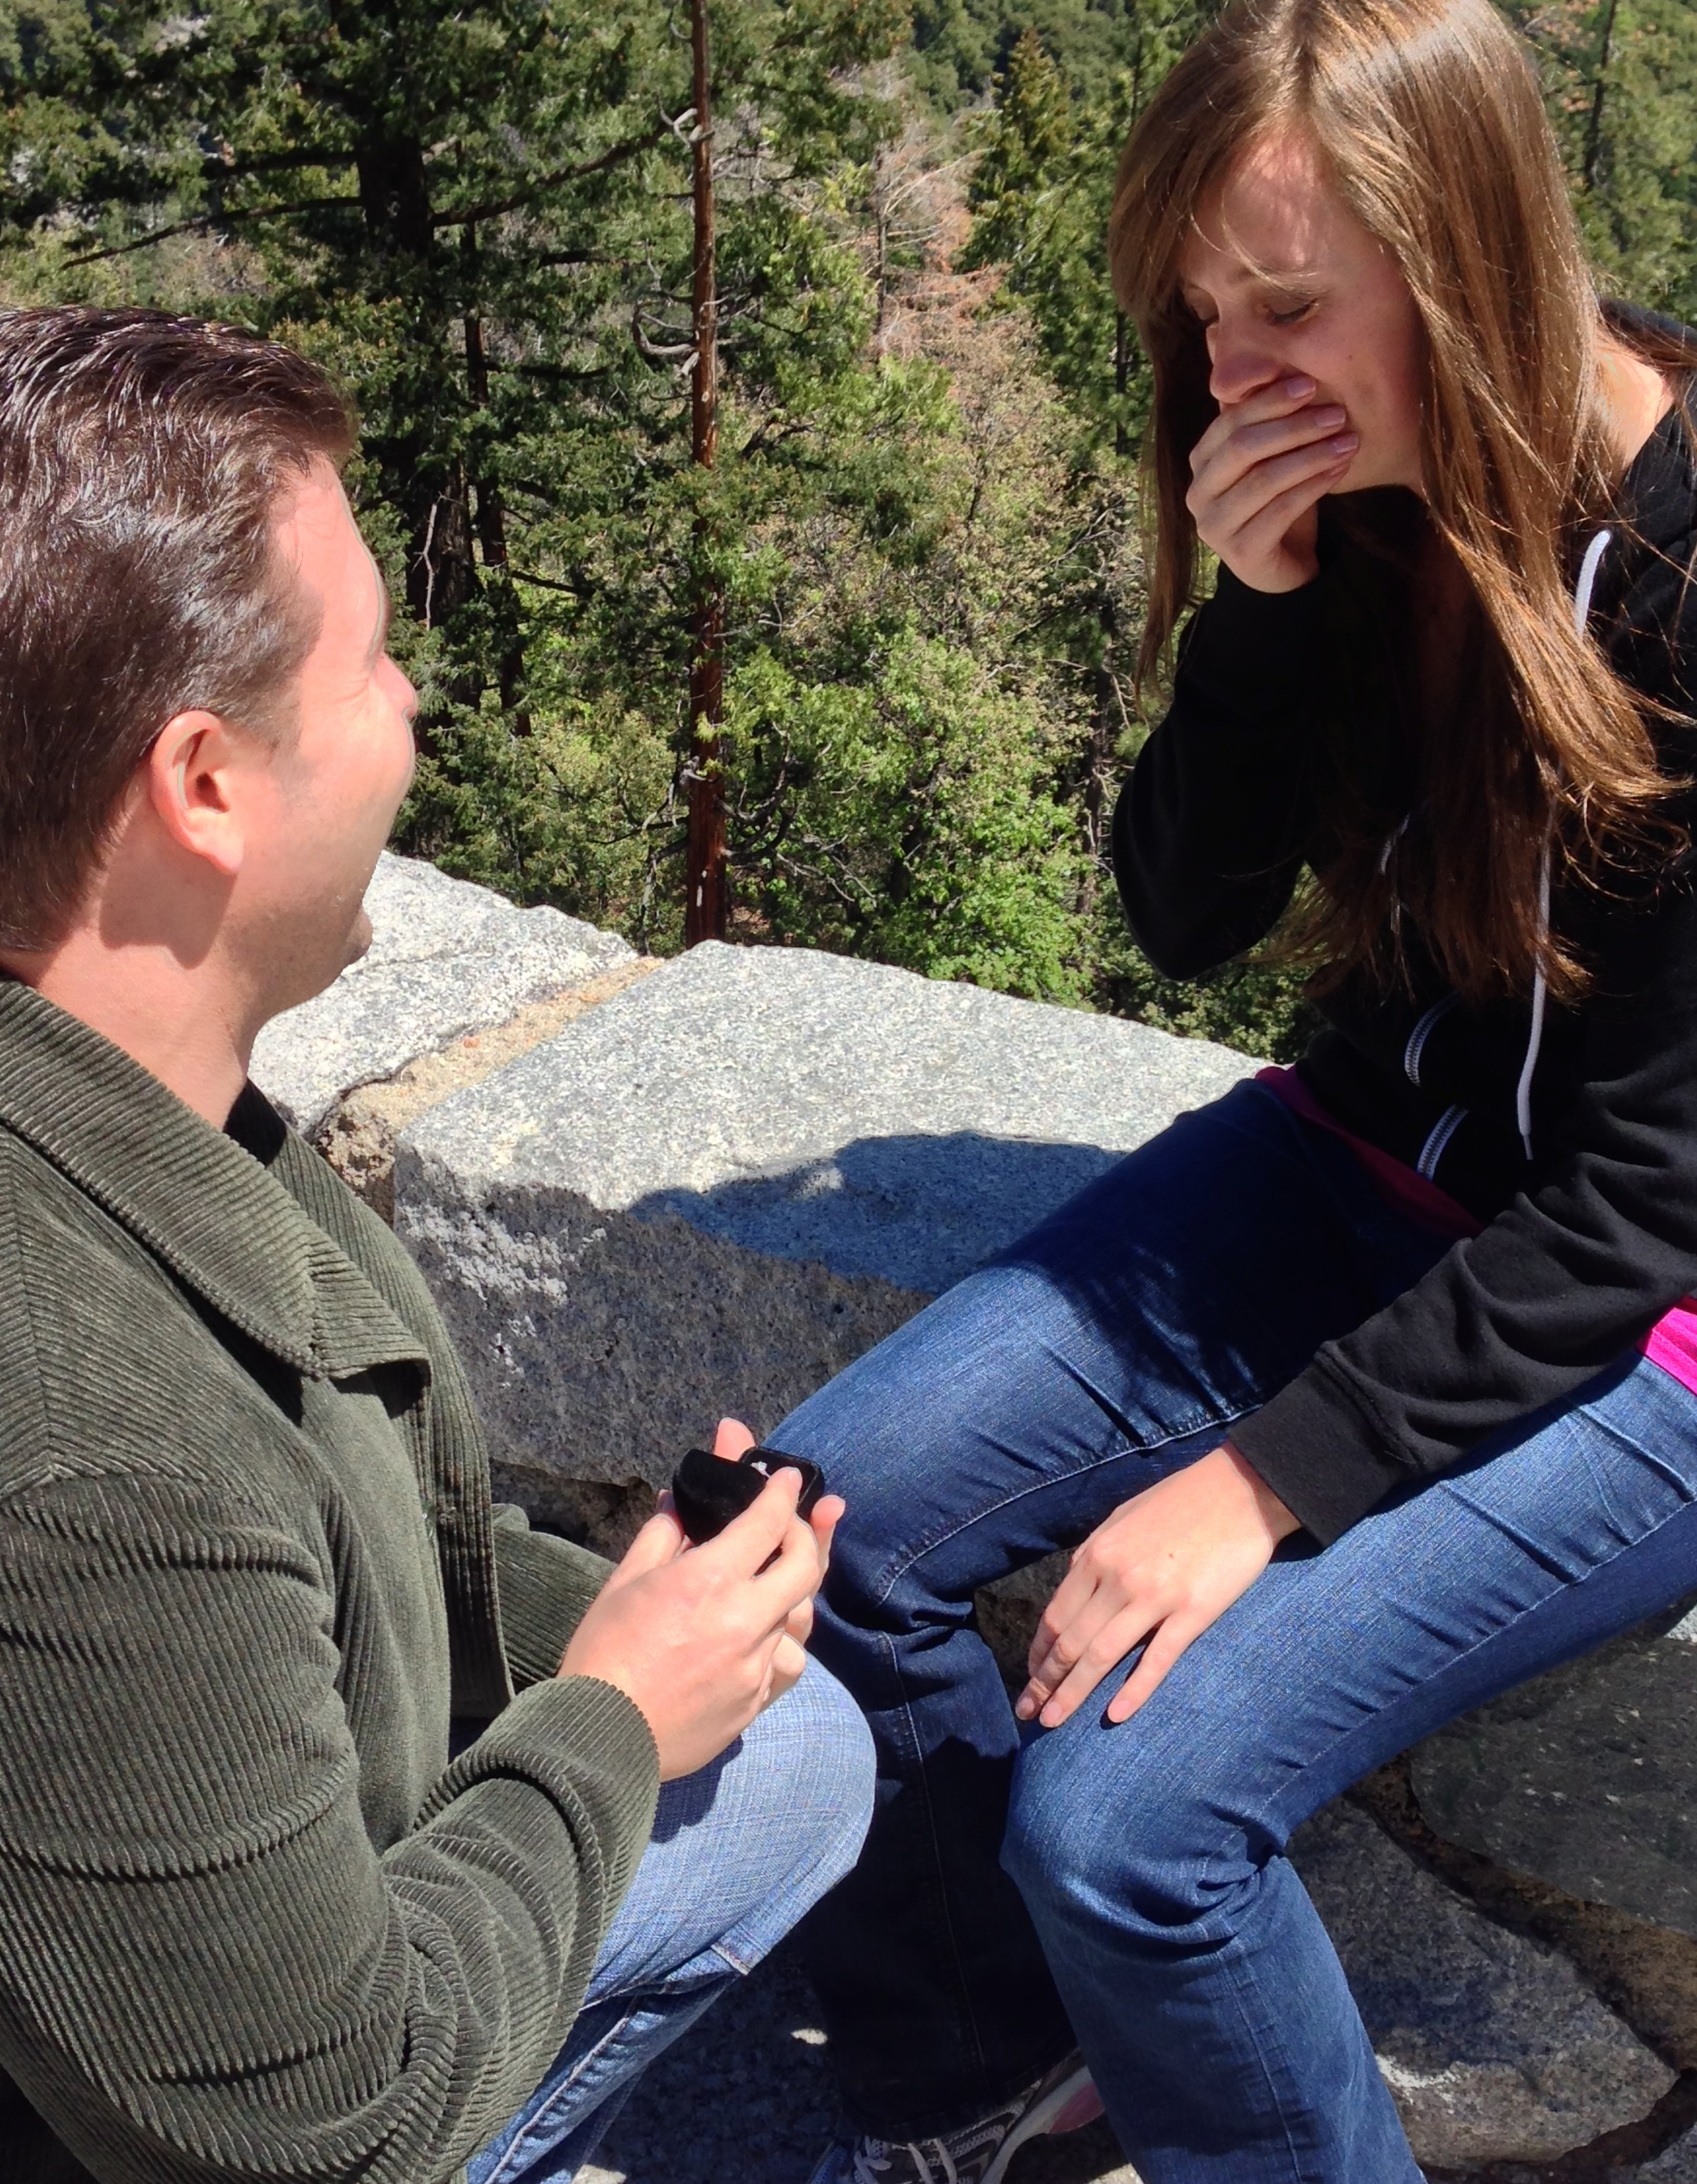 Image 3 of Danielle and Kyle | Yosemite National Park Proposal